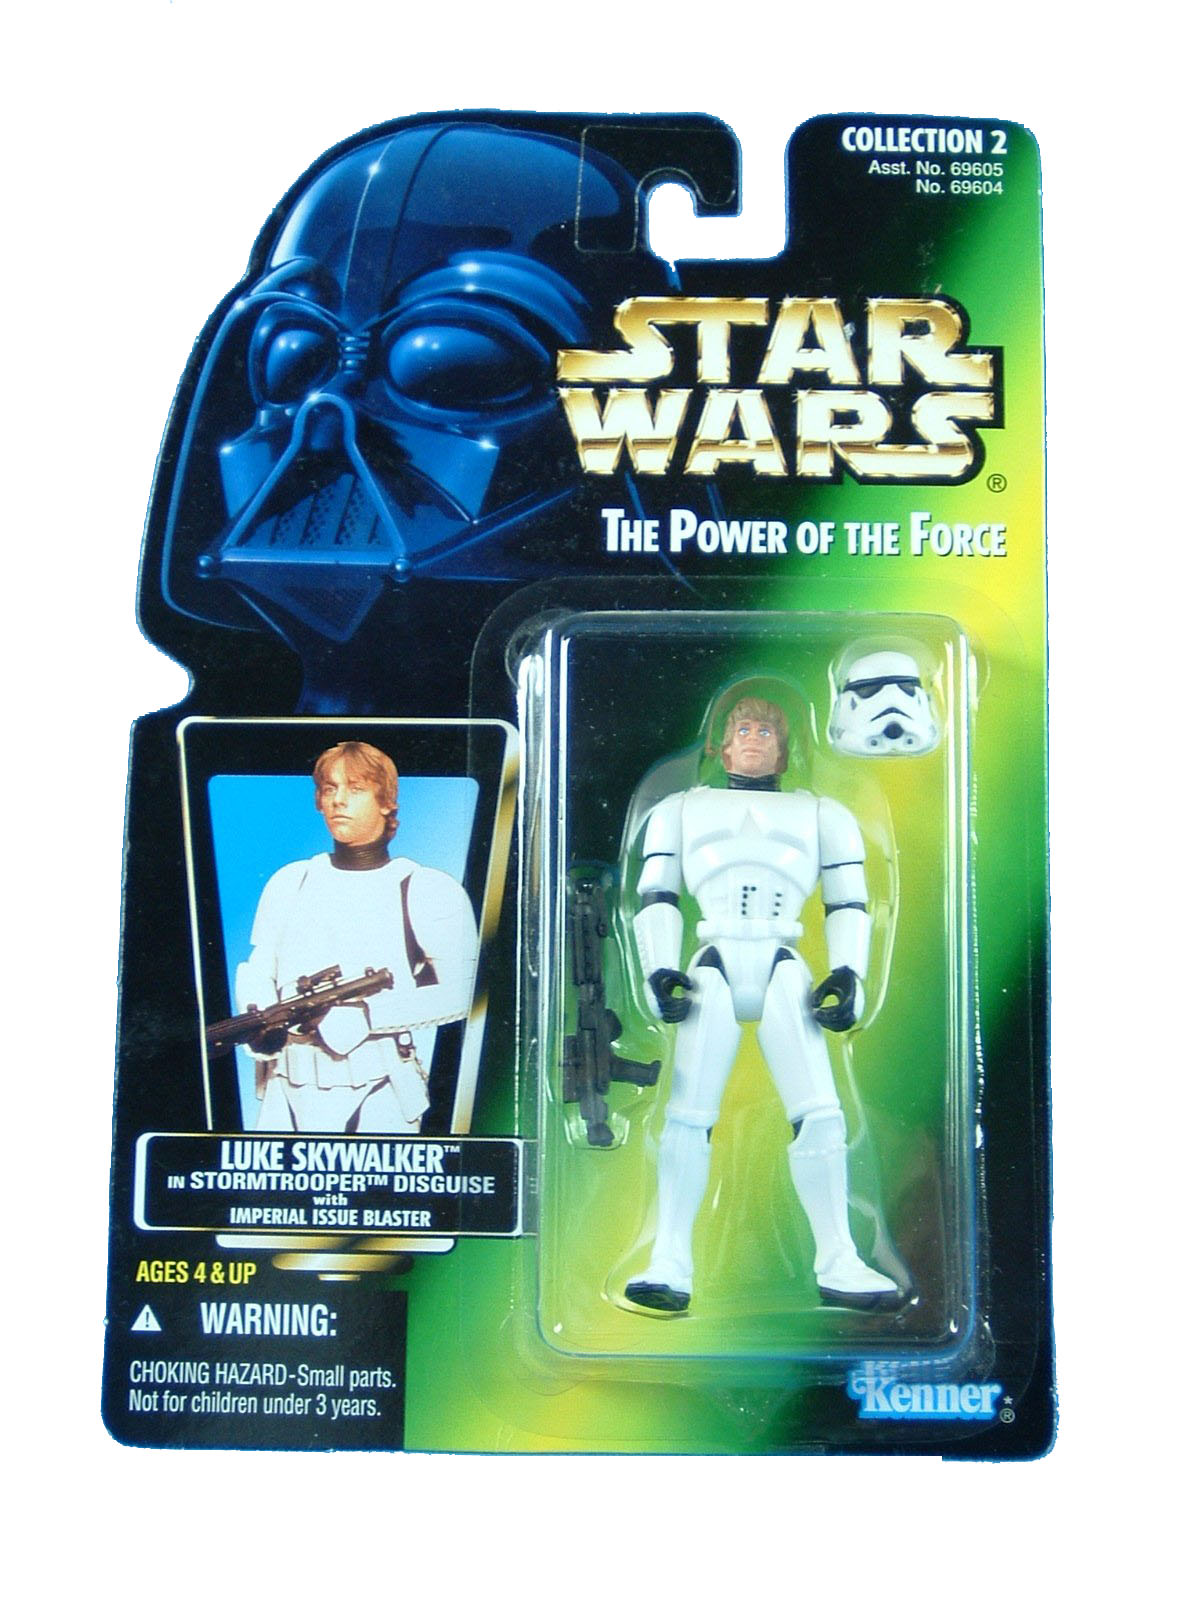 1996 Star Wars POTF2 LUKE SKYWALKER Stormtrooper Green Complete